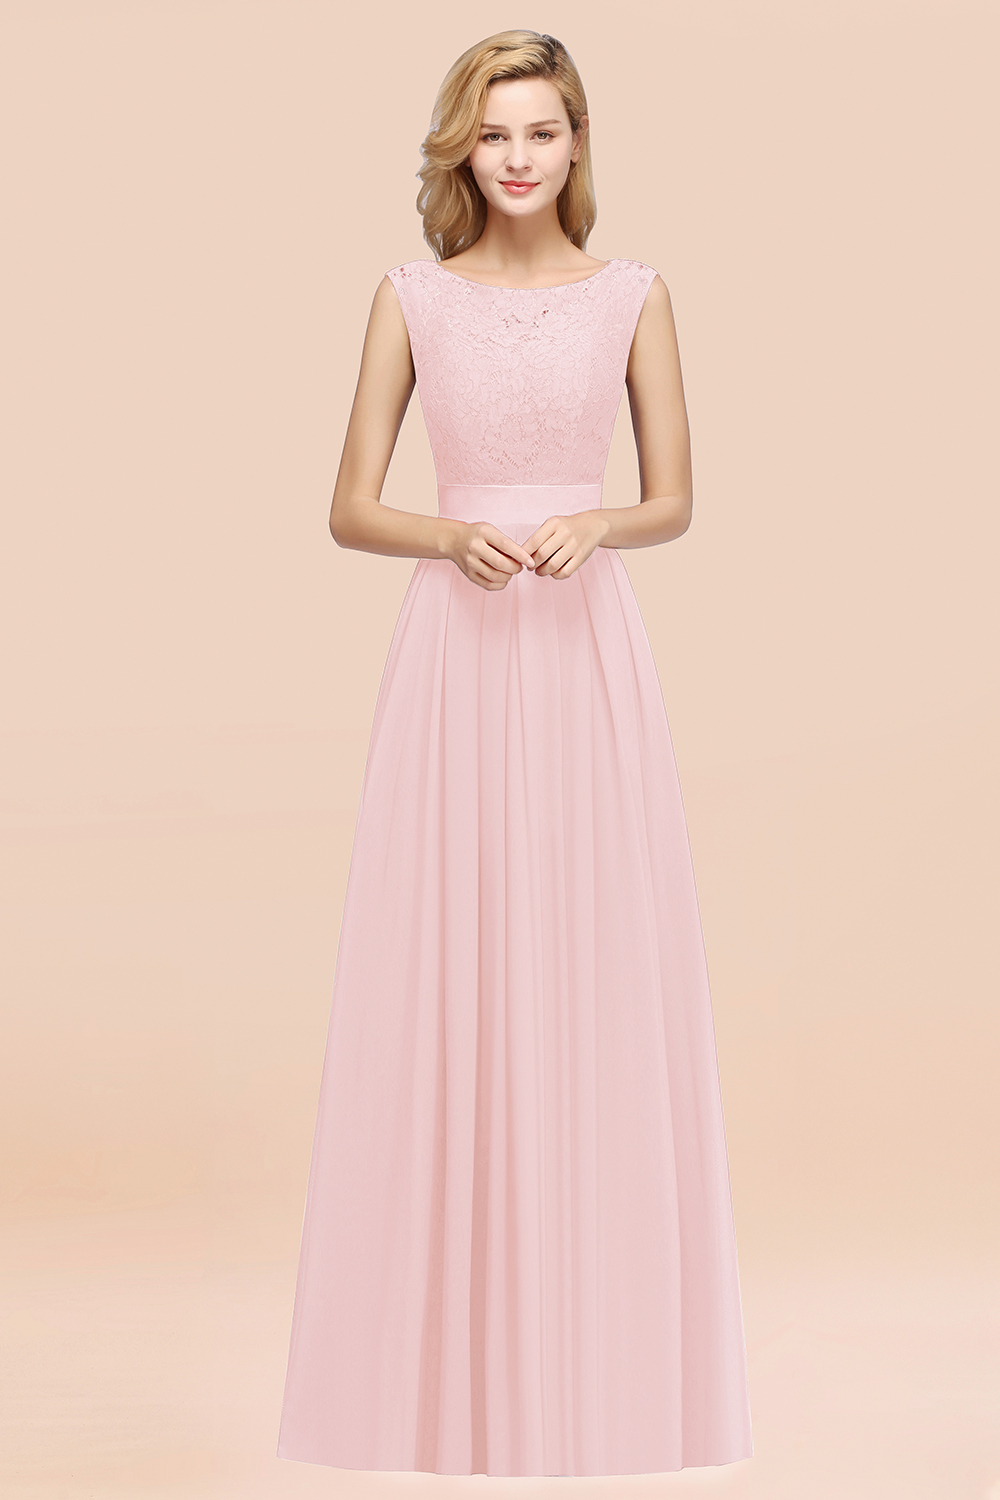 BMbridal Vintage Sleeveless Lace Bridesmaid Dresses Affordable Chiffon Wedding Party Dress Online